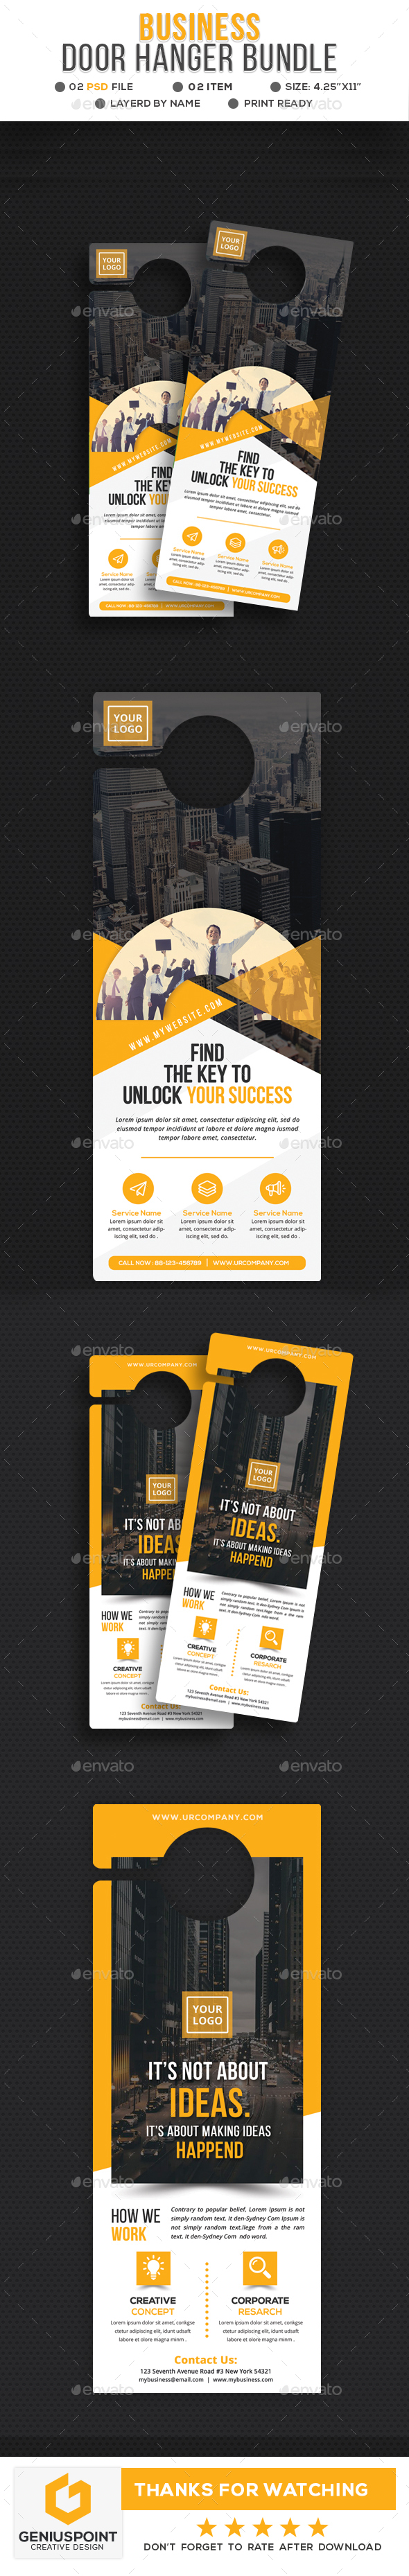 Business Door Hanger Bundle - Miscellaneous Print Templates